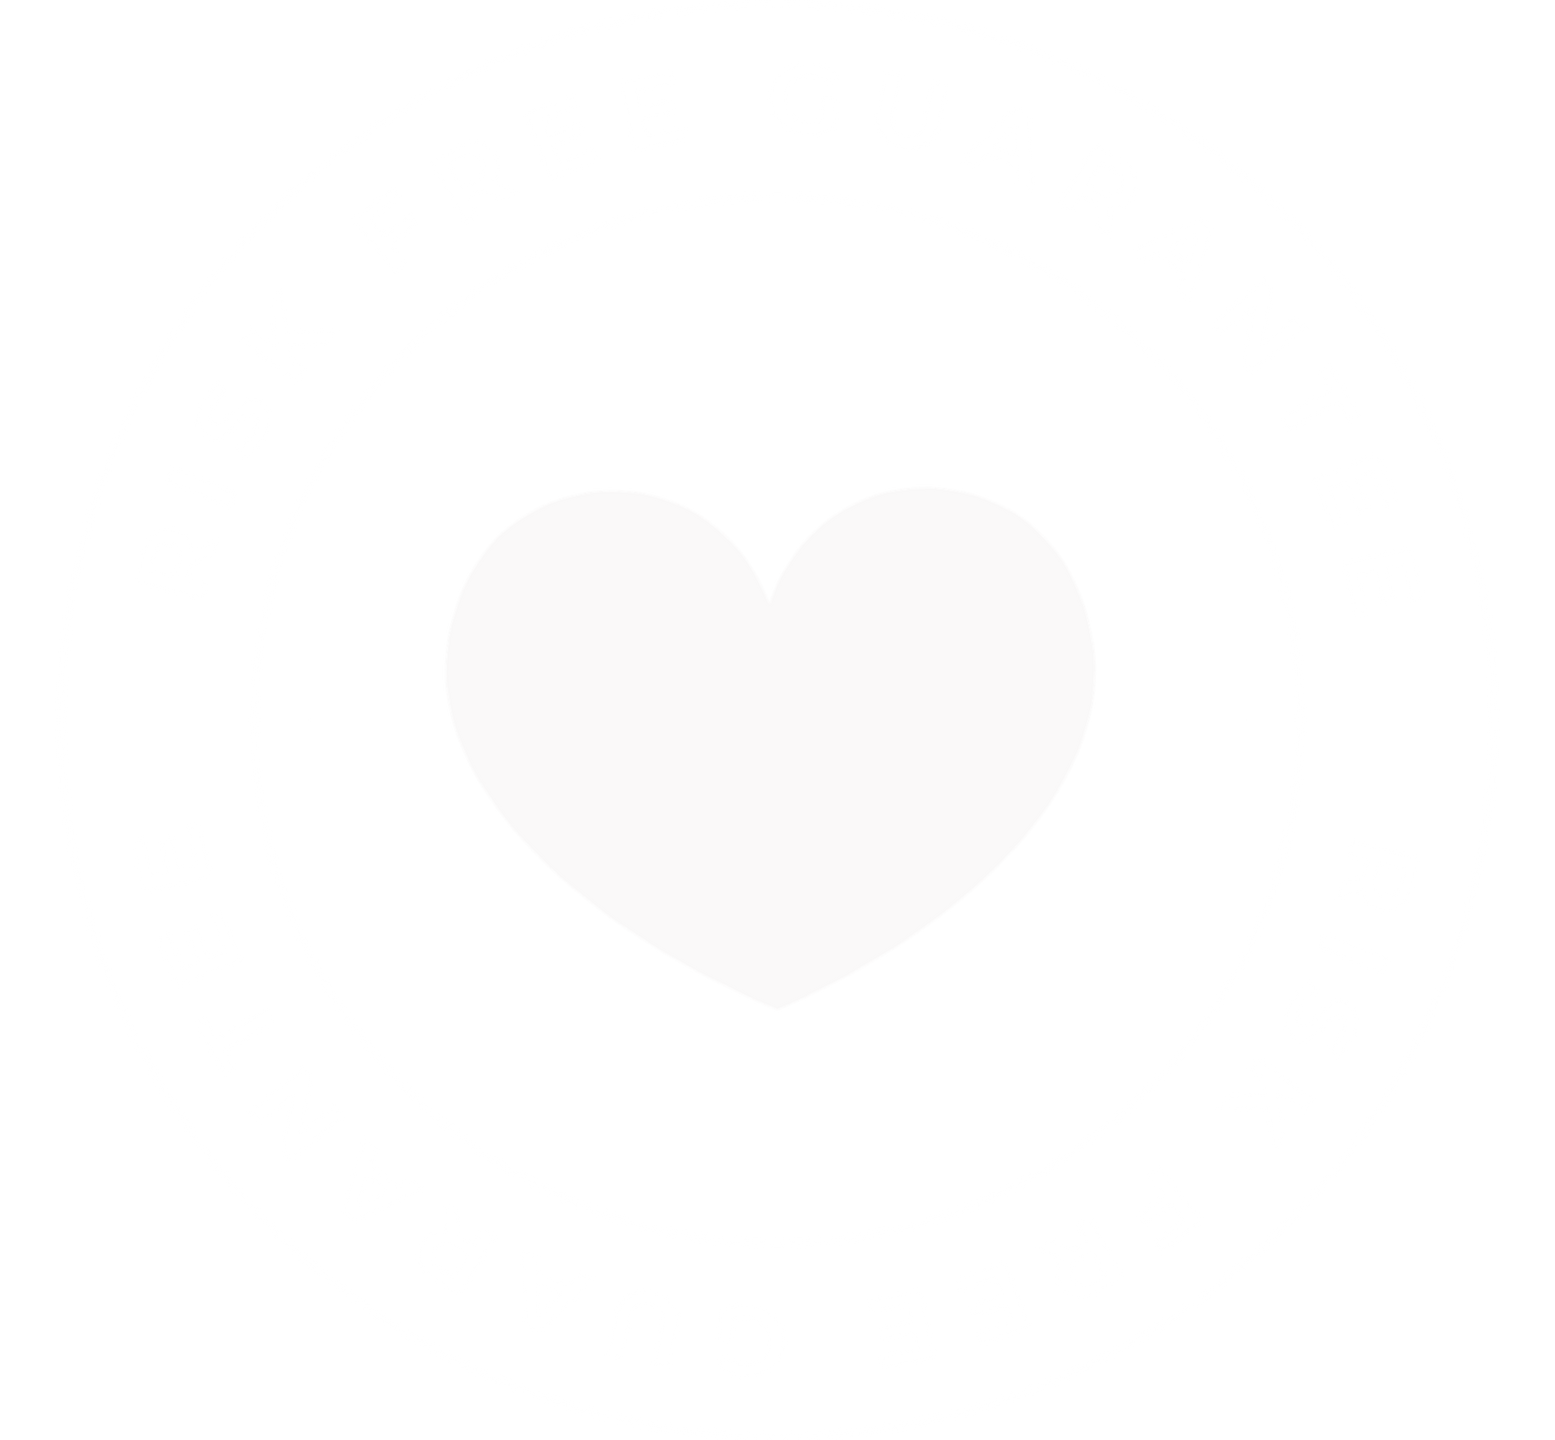 Graphic Image of Risk Free Guarantee Circle with Heart at Center